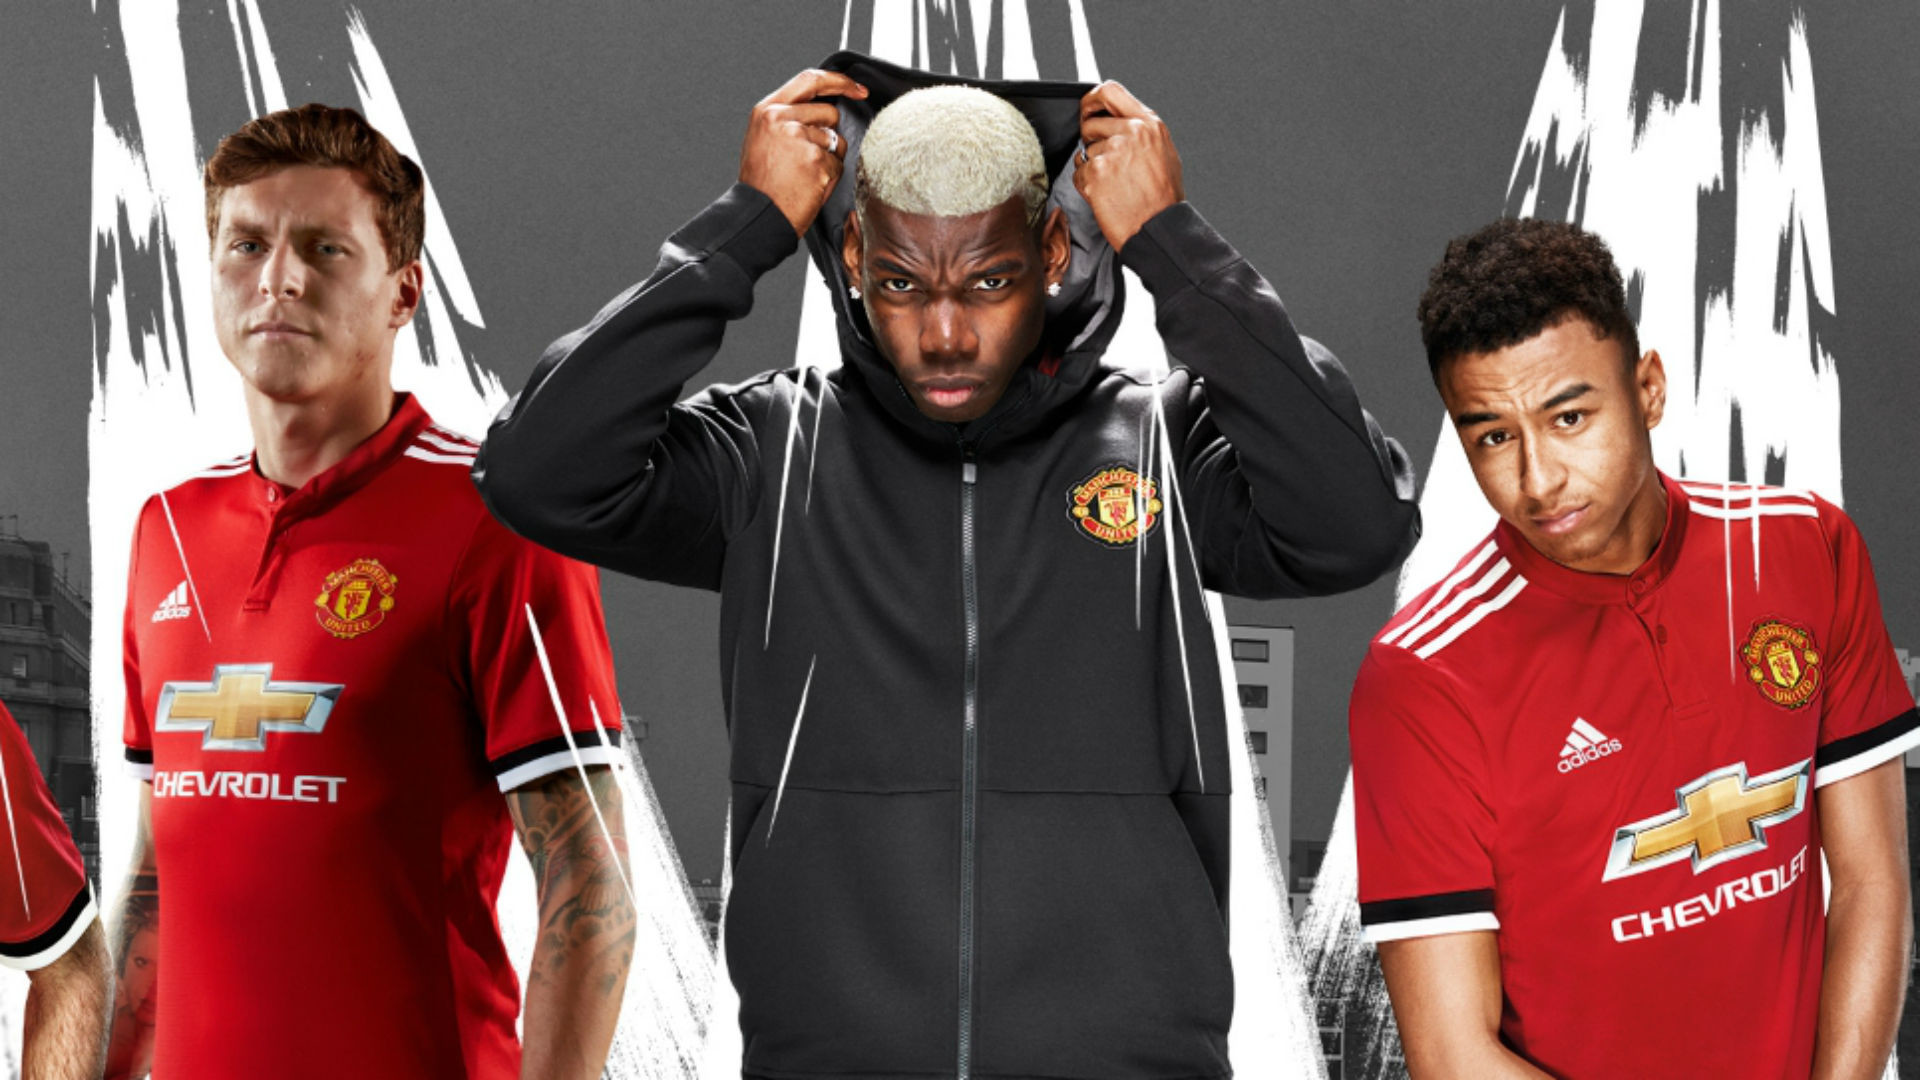 Best 3d Live Wallpaper Android 2015 Manchester United Hd Wallpaper 2018 73 Images